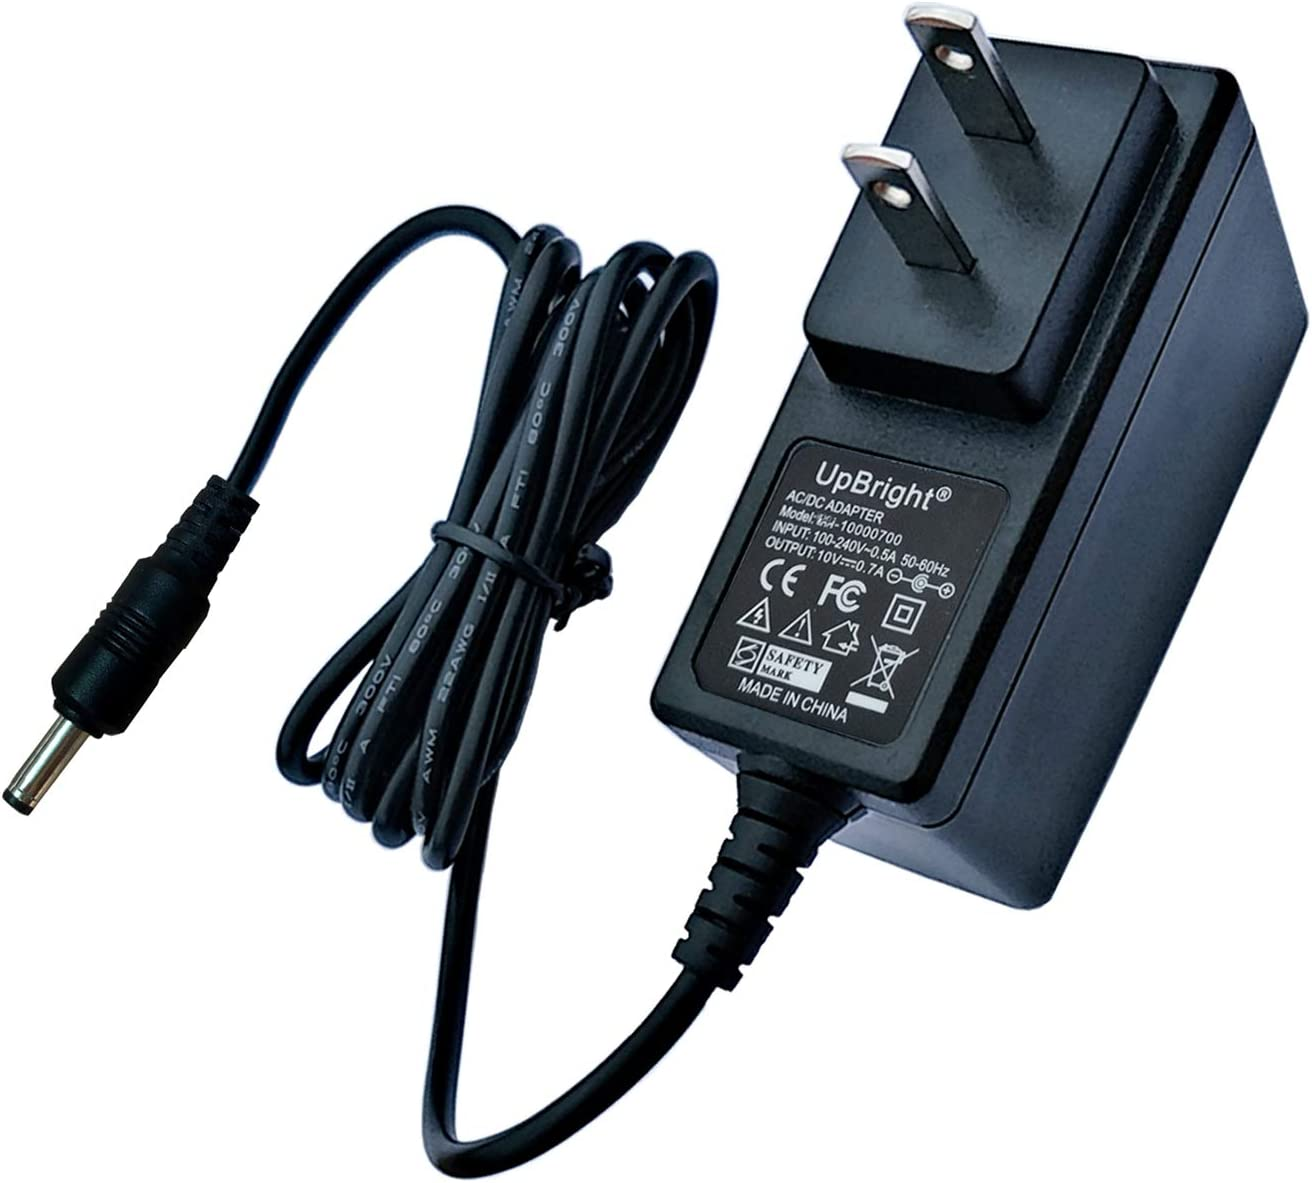 10V 700mA 0.7A Universal AC DC Adapter Charger For Lego Mindstorms EV3 NXT 45517 Power Supply